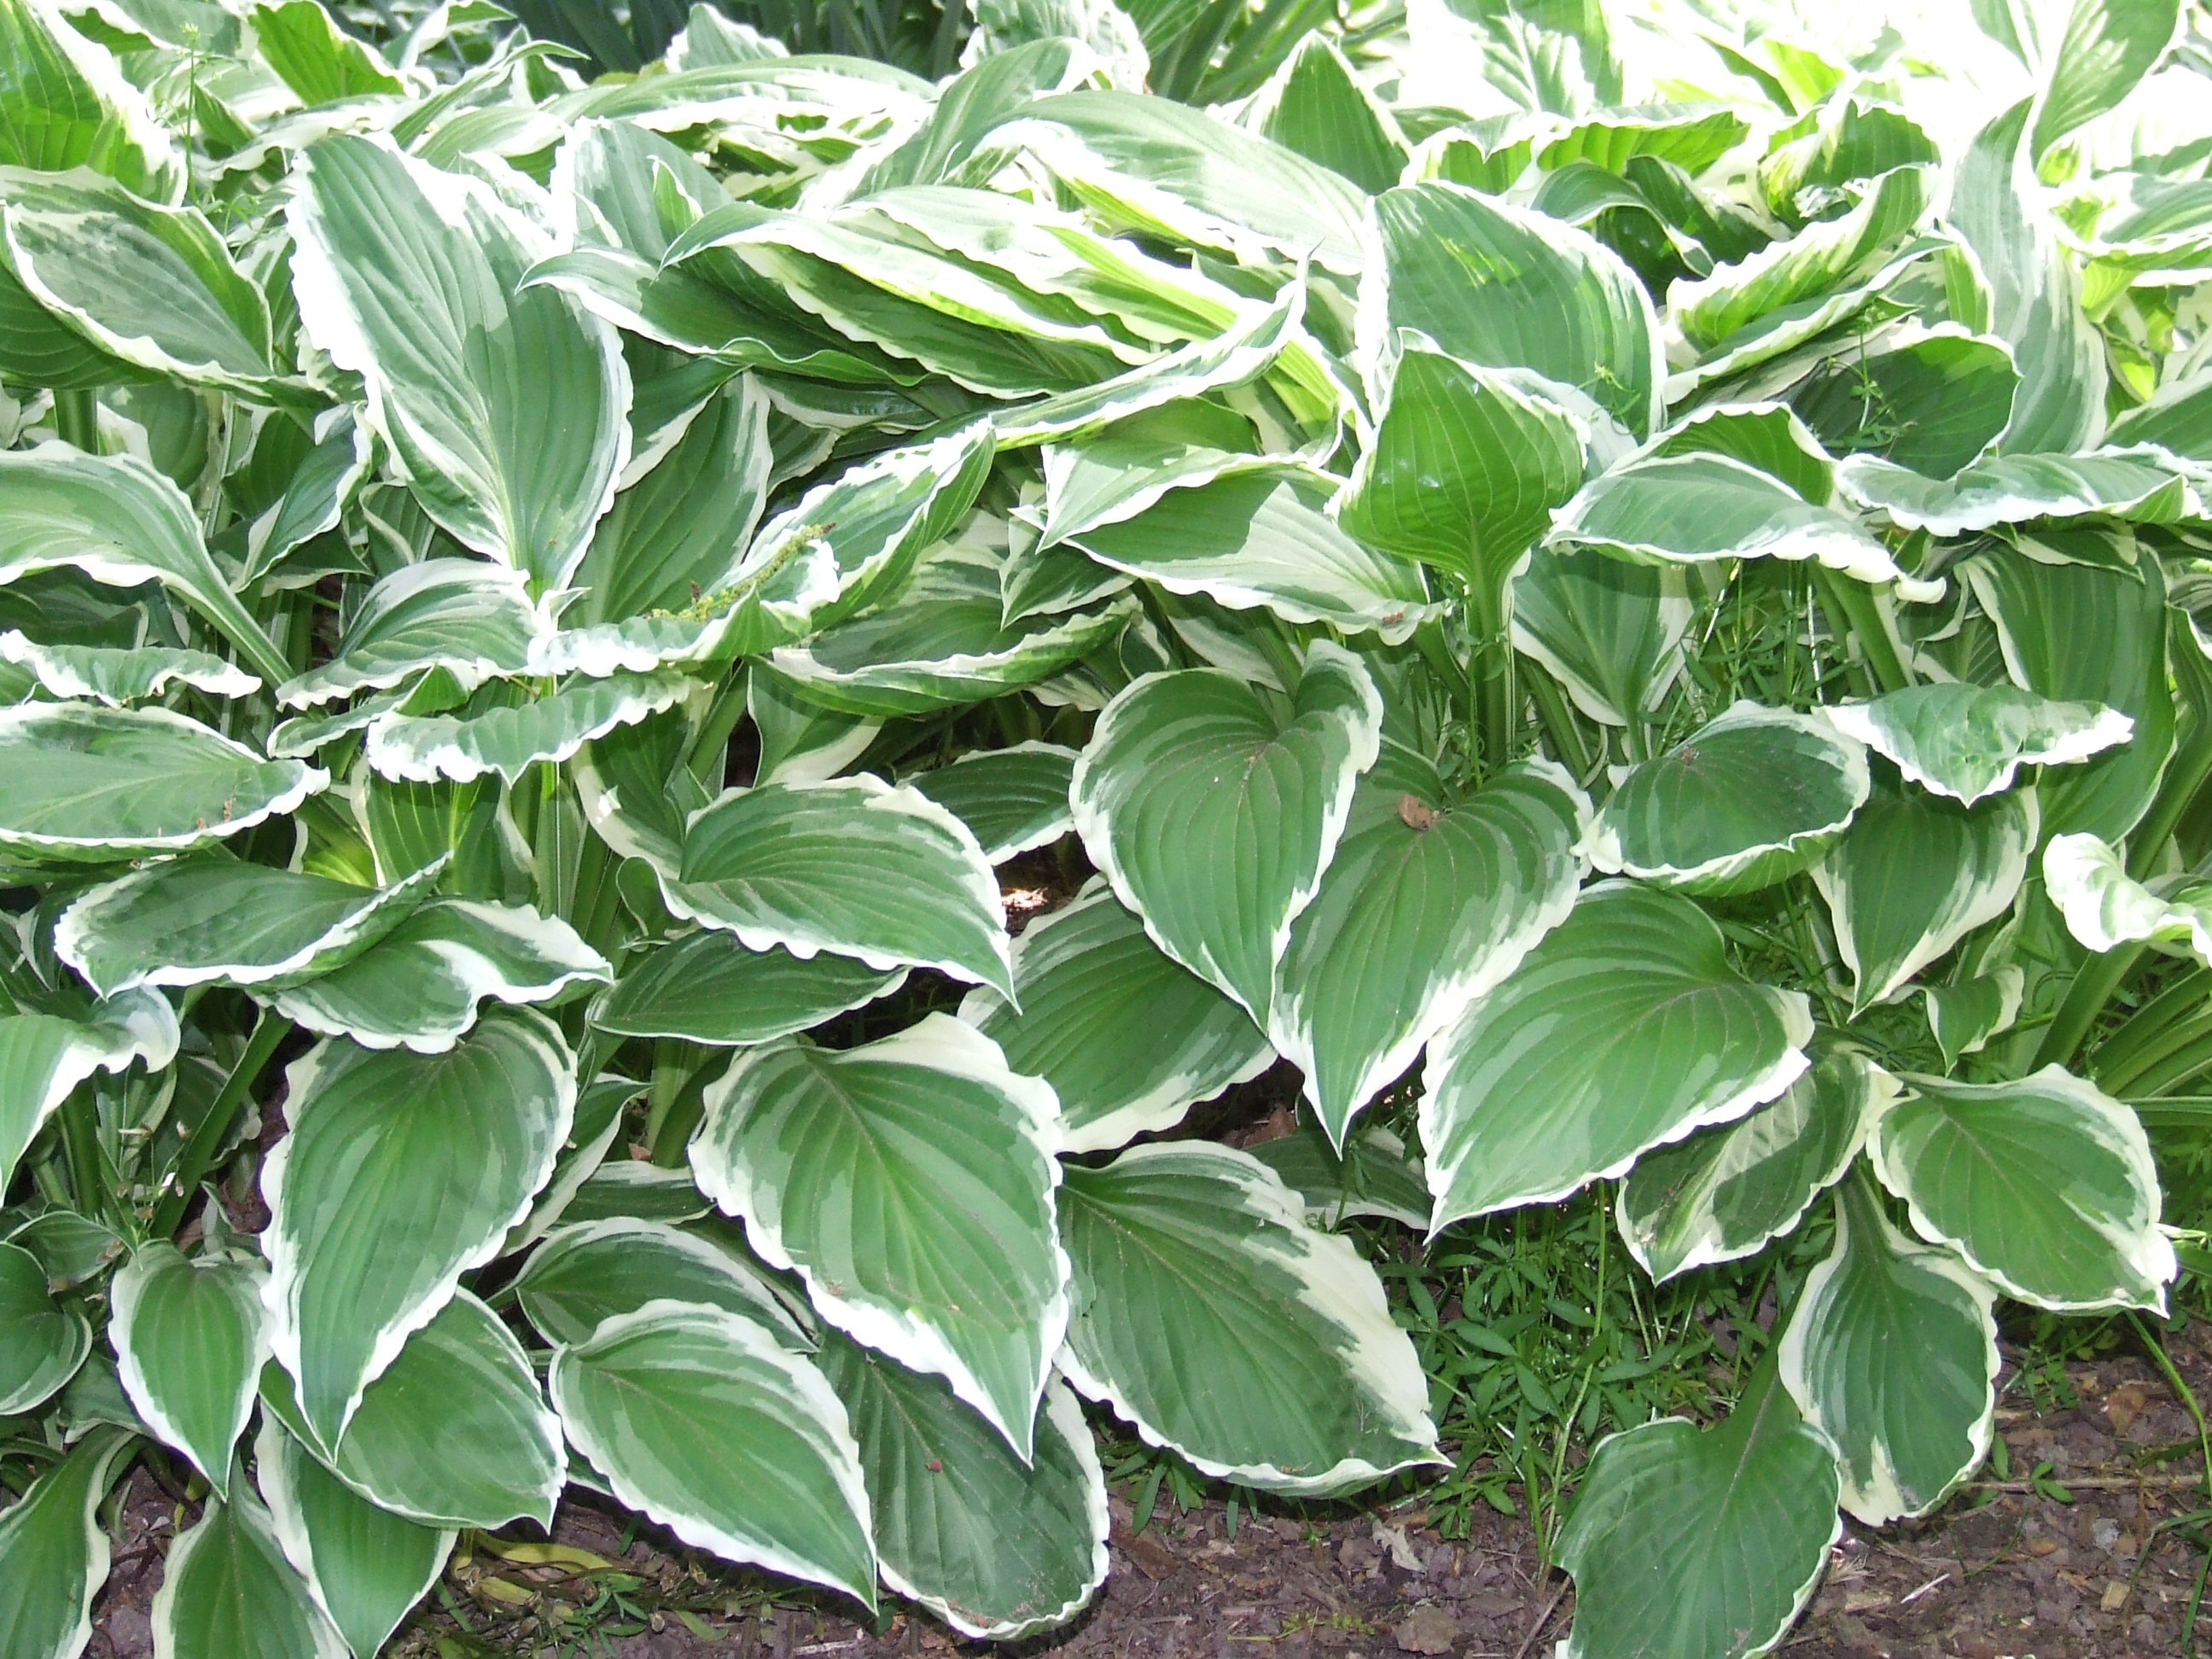 Hosta Sale At Bridgewater Gardens Great Hosta Plants Including